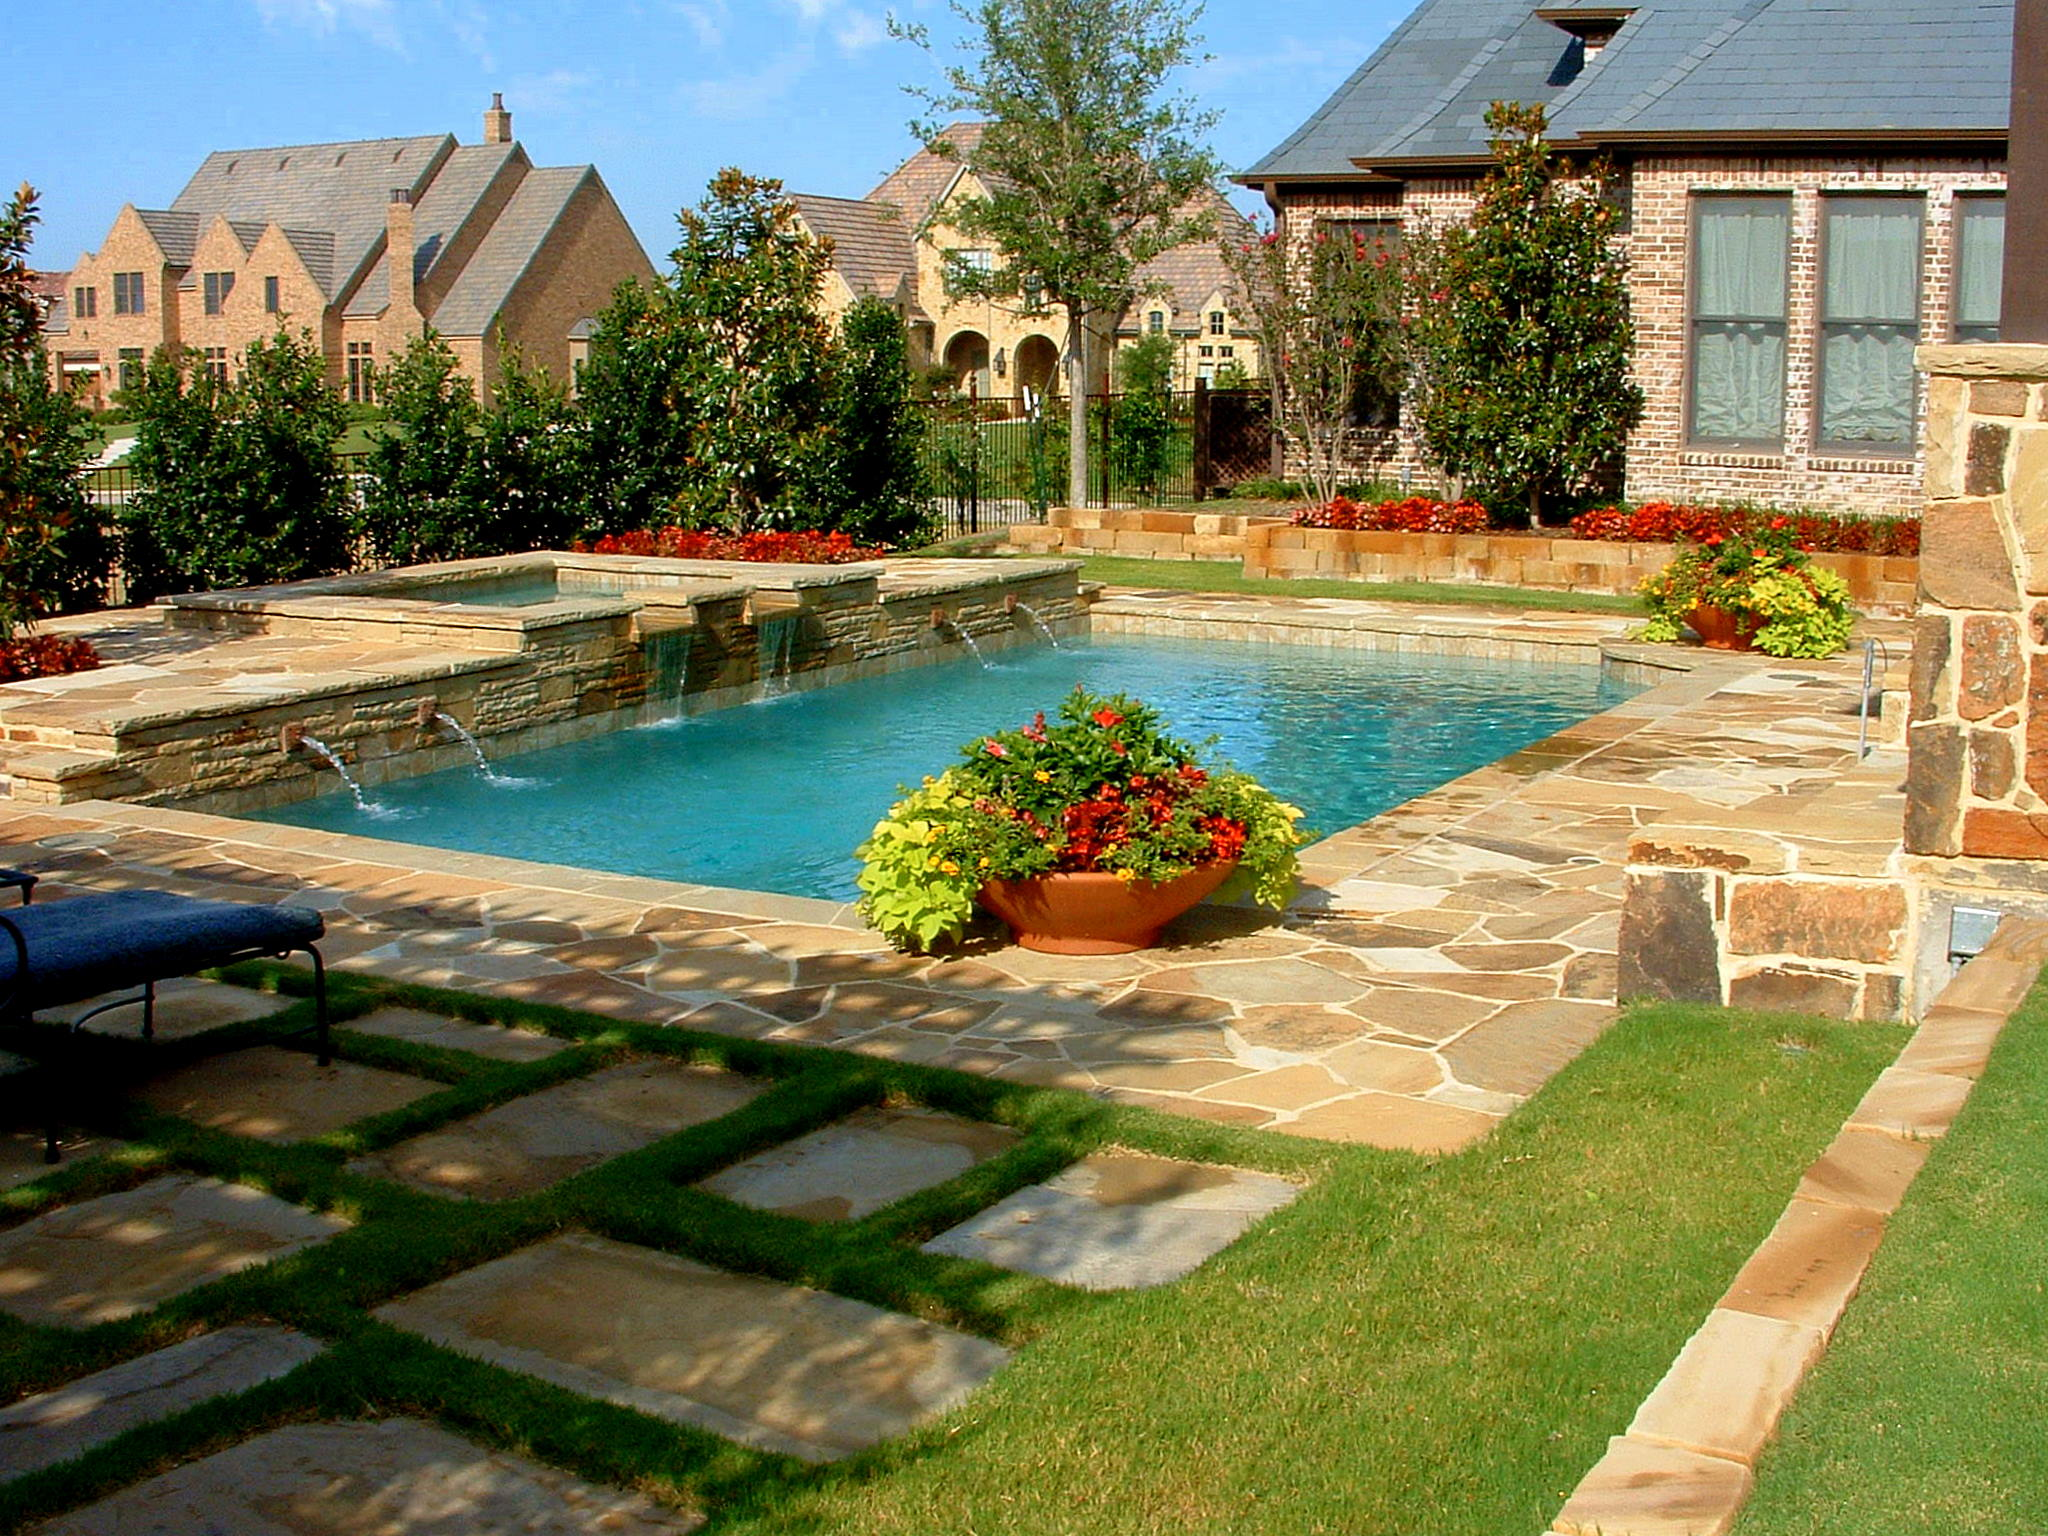 Backyard landscaping ideas swimming pool design for Outdoor landscaping ideas